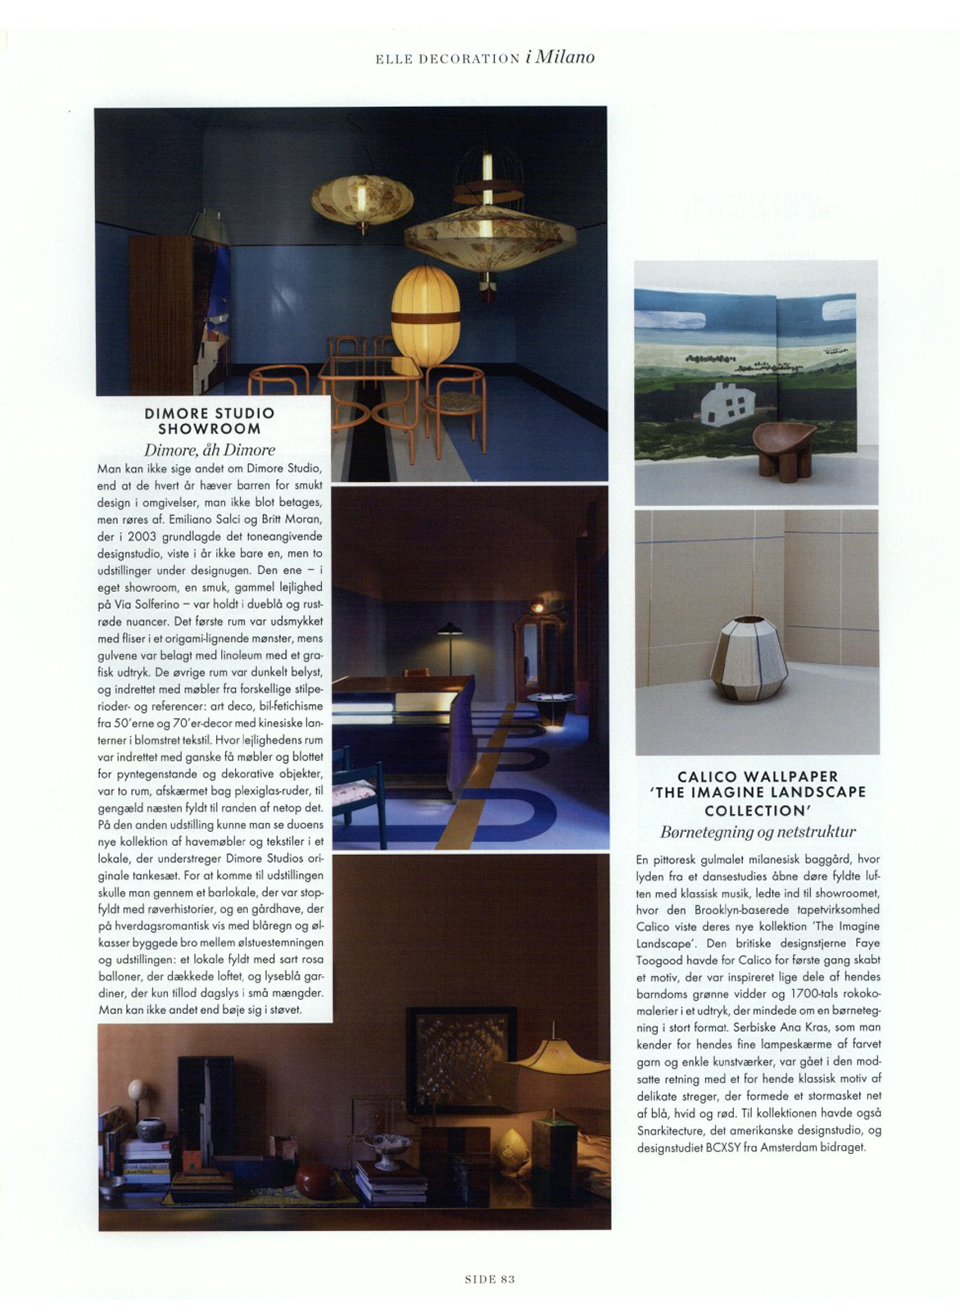 Elle Decoration Dk Elle Decoration September 2017 Dimoregallery